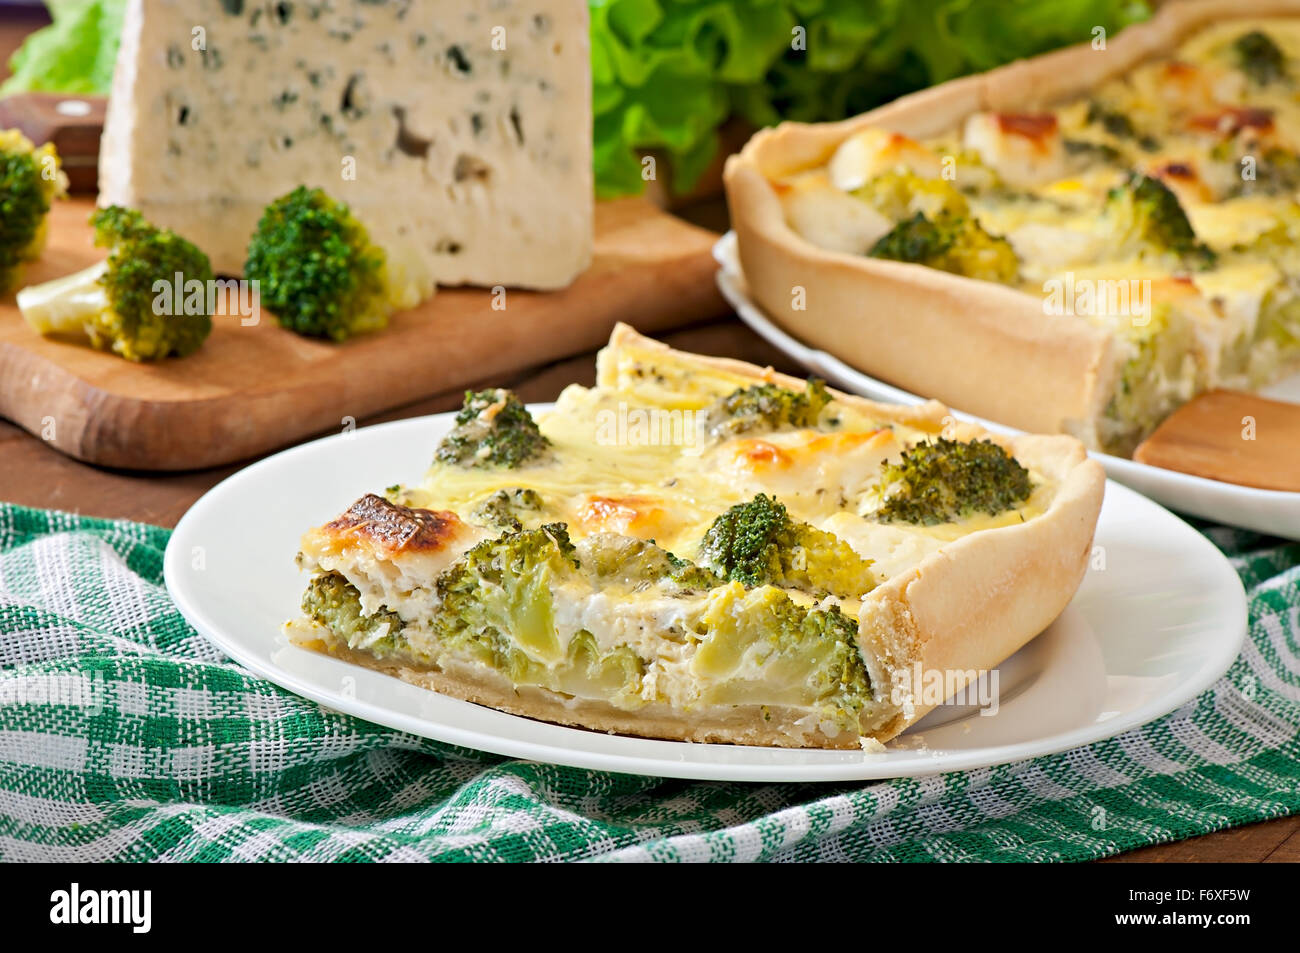 Quiche with broccoli and feta cheese - Stock Image